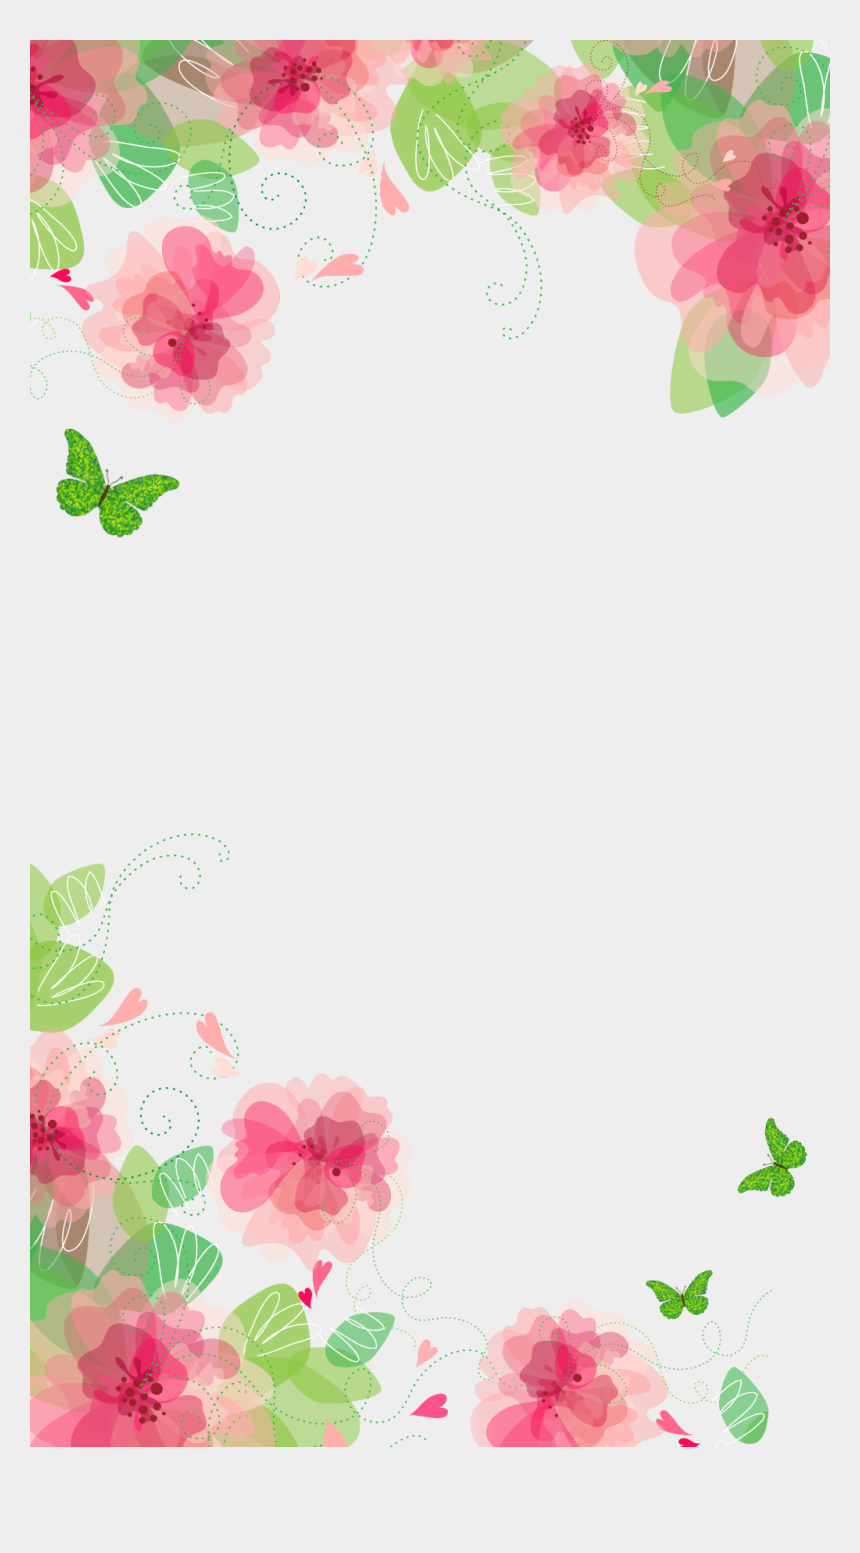 spring flowers and butterflies clipart, Cartoons - #spring #flowers #butterflies #frame #border #ftestickers - Flower Background